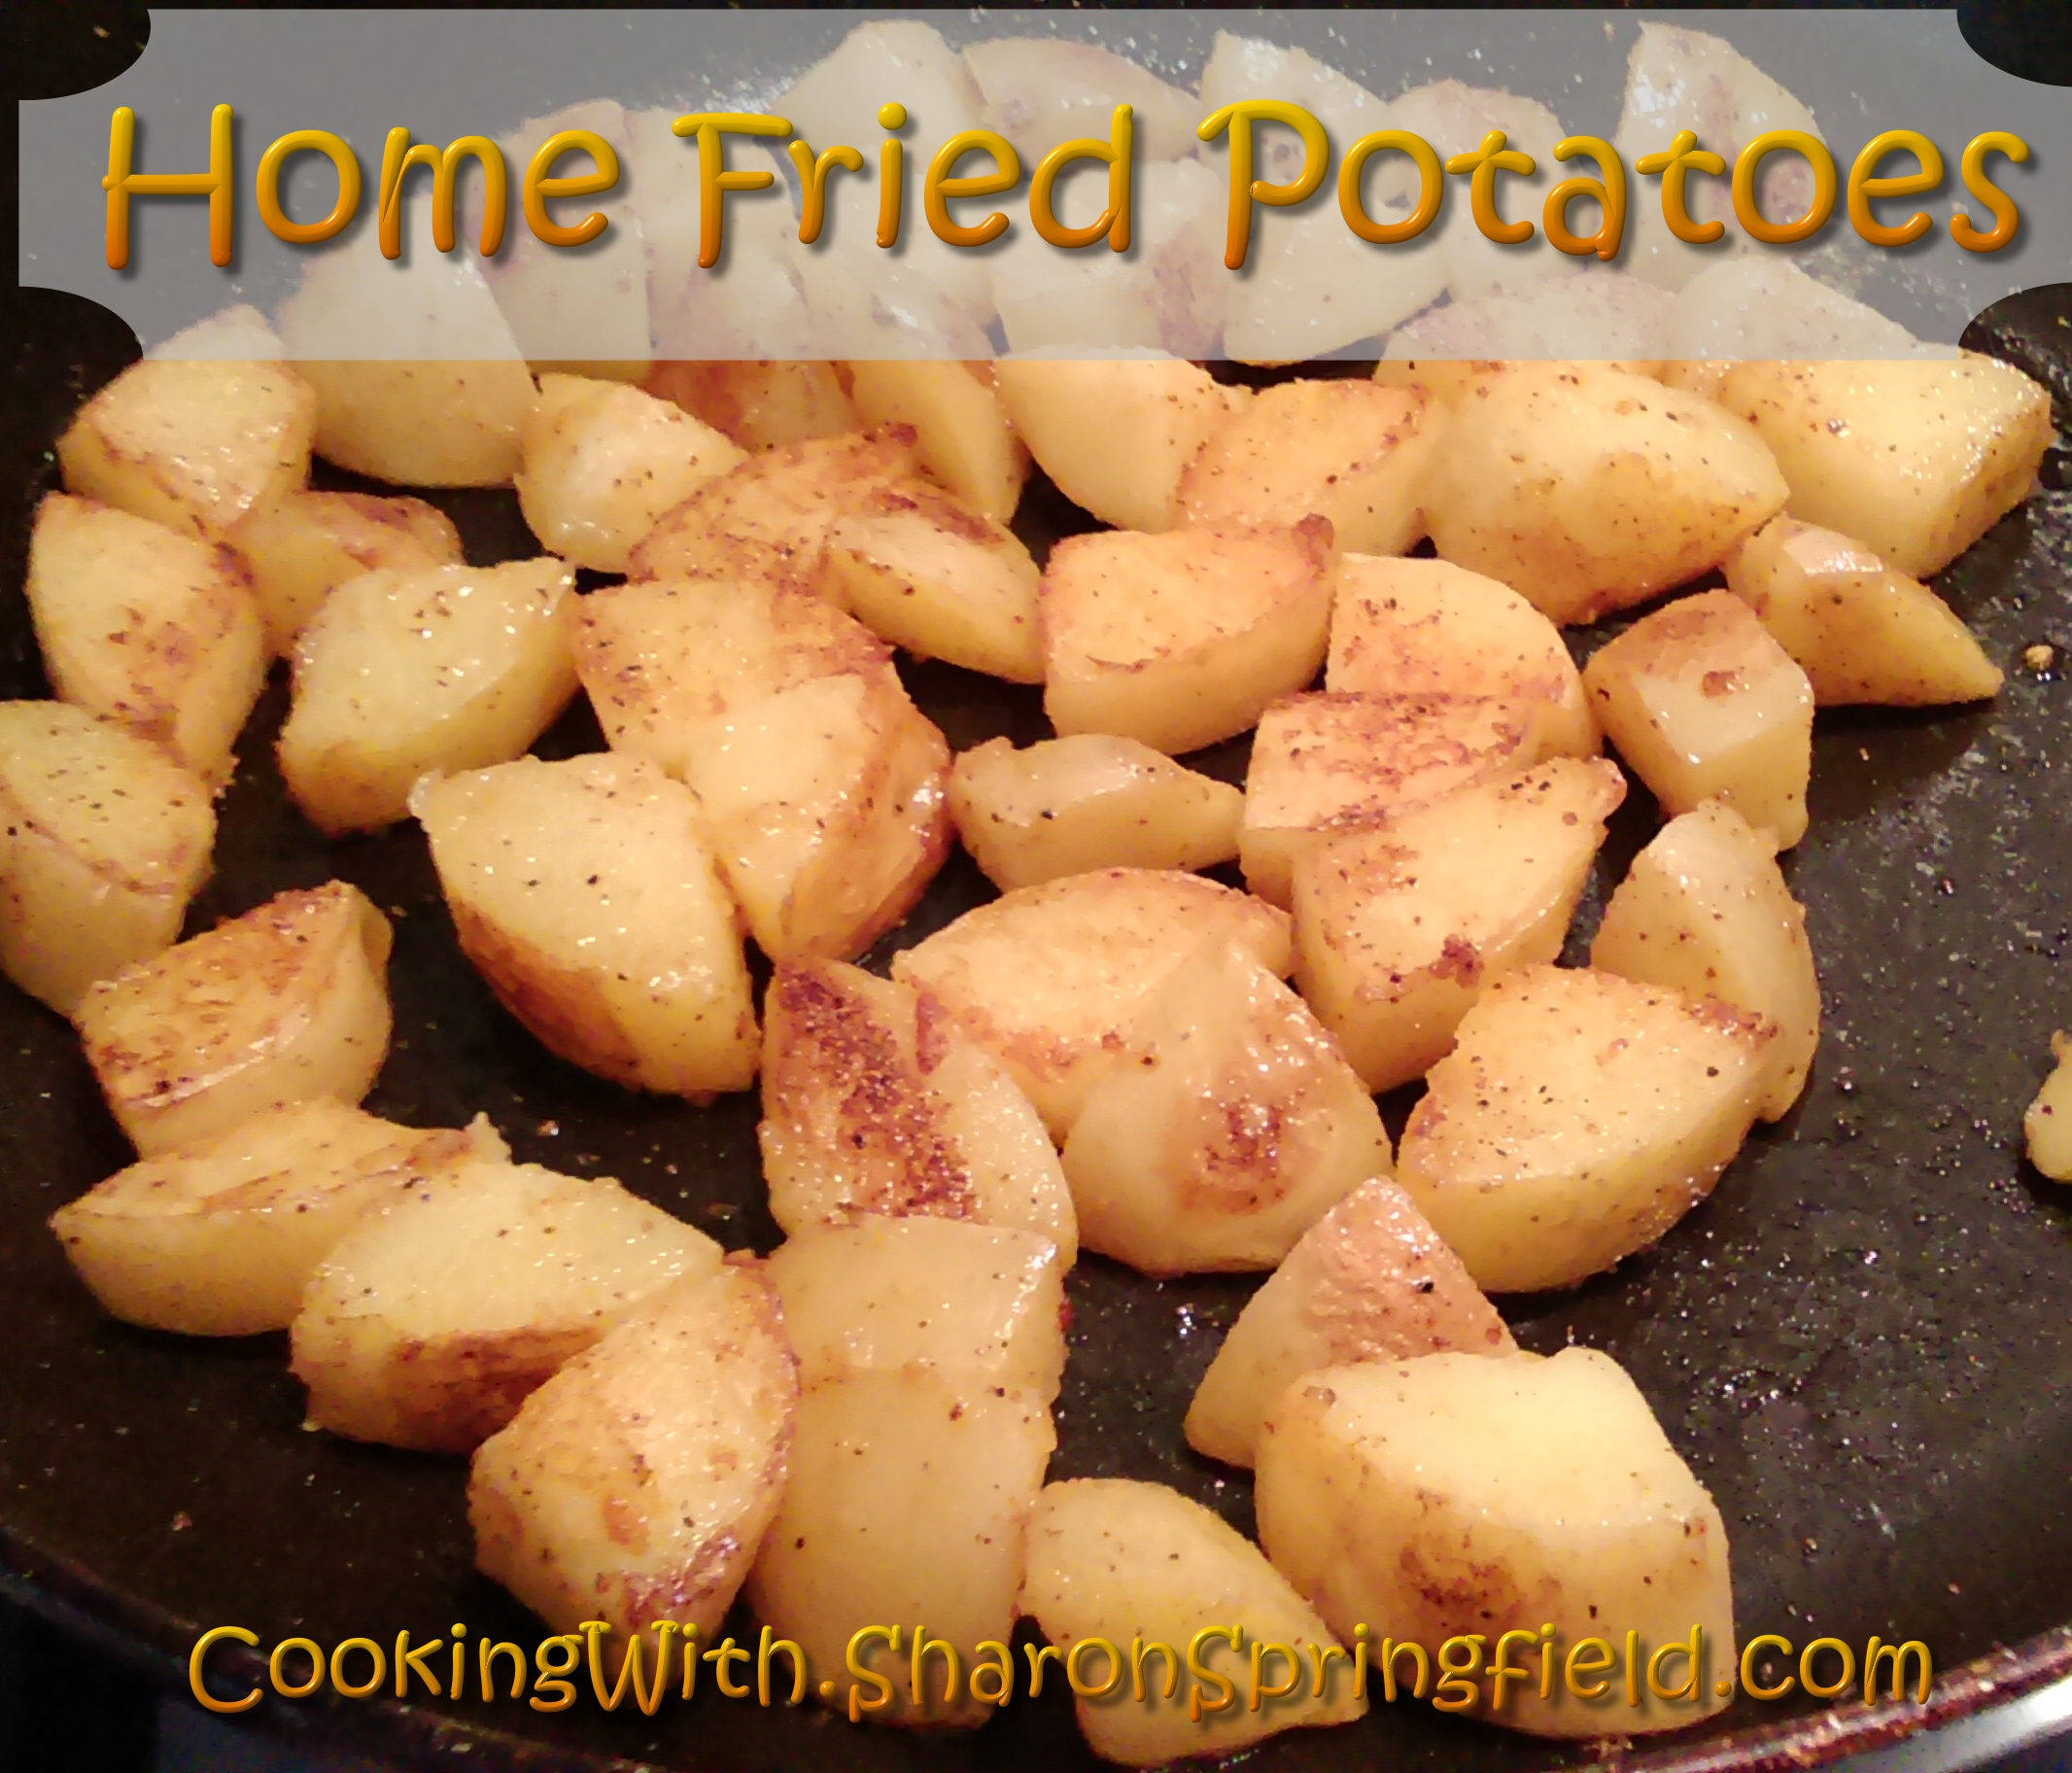 Home Fried Potatoes